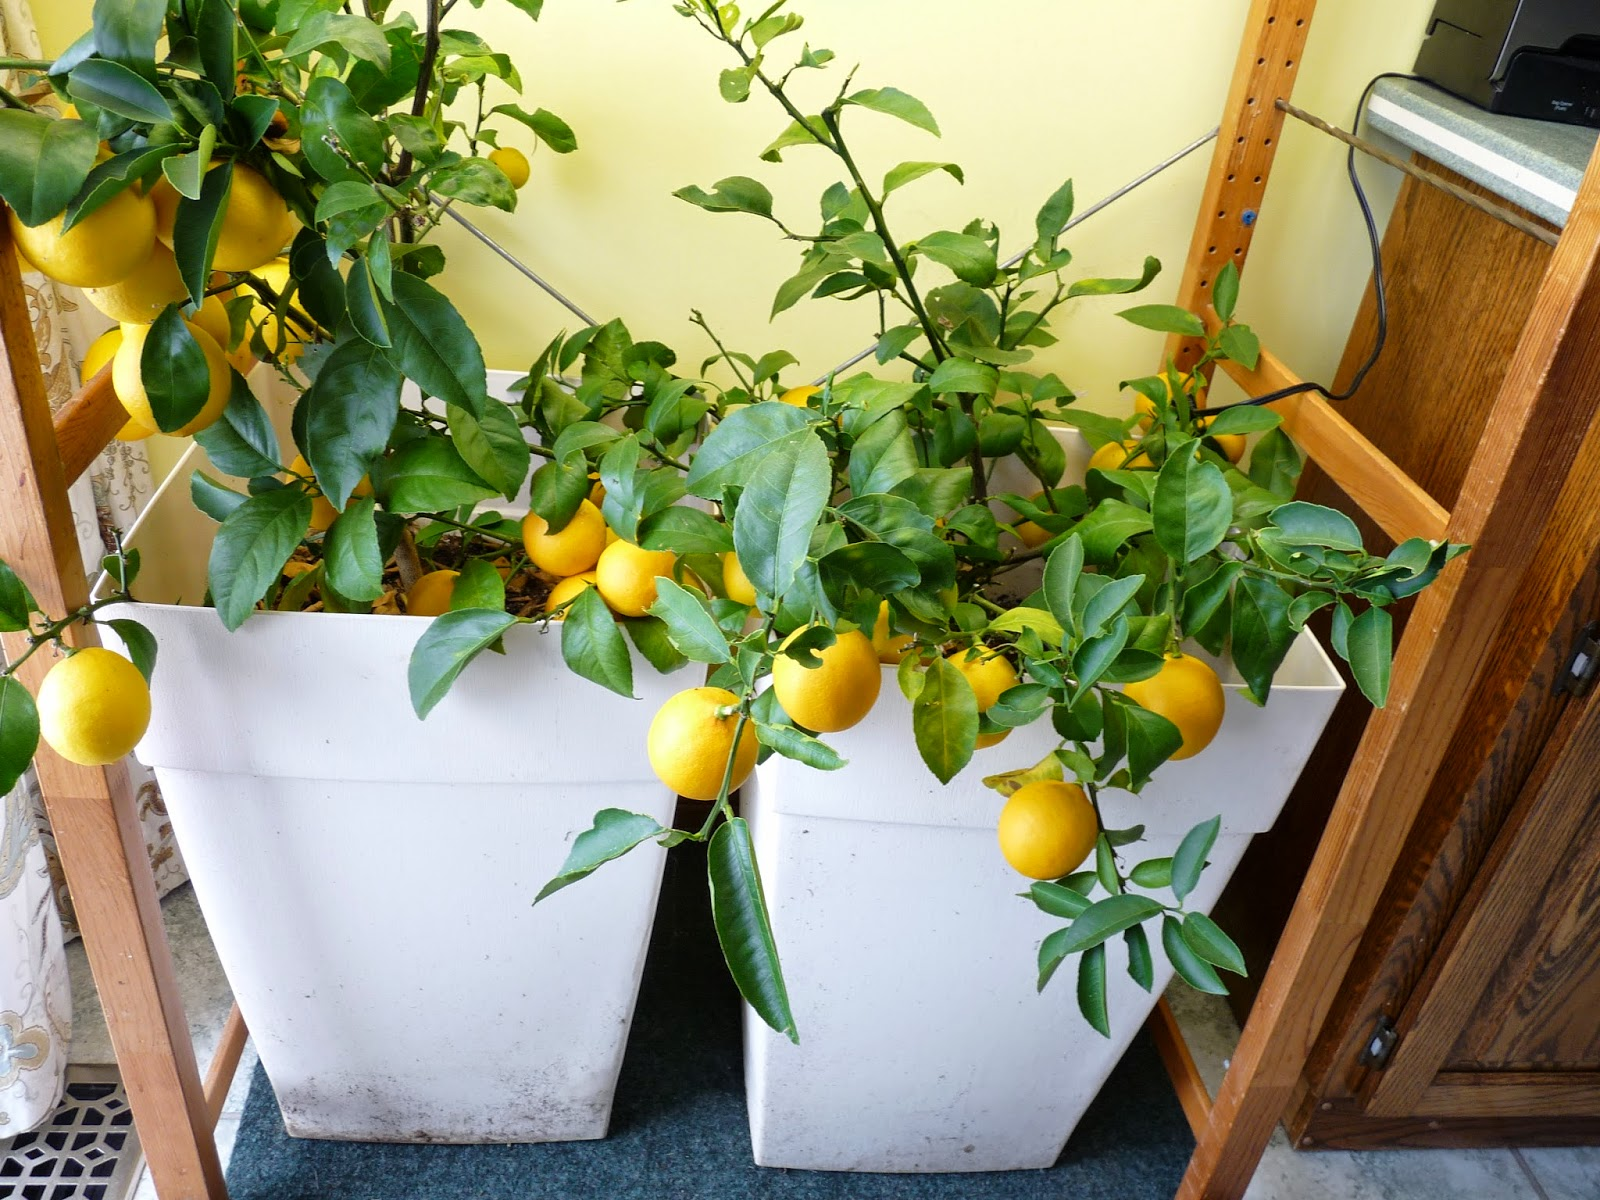 My Meyers lemon trees wintering indoors